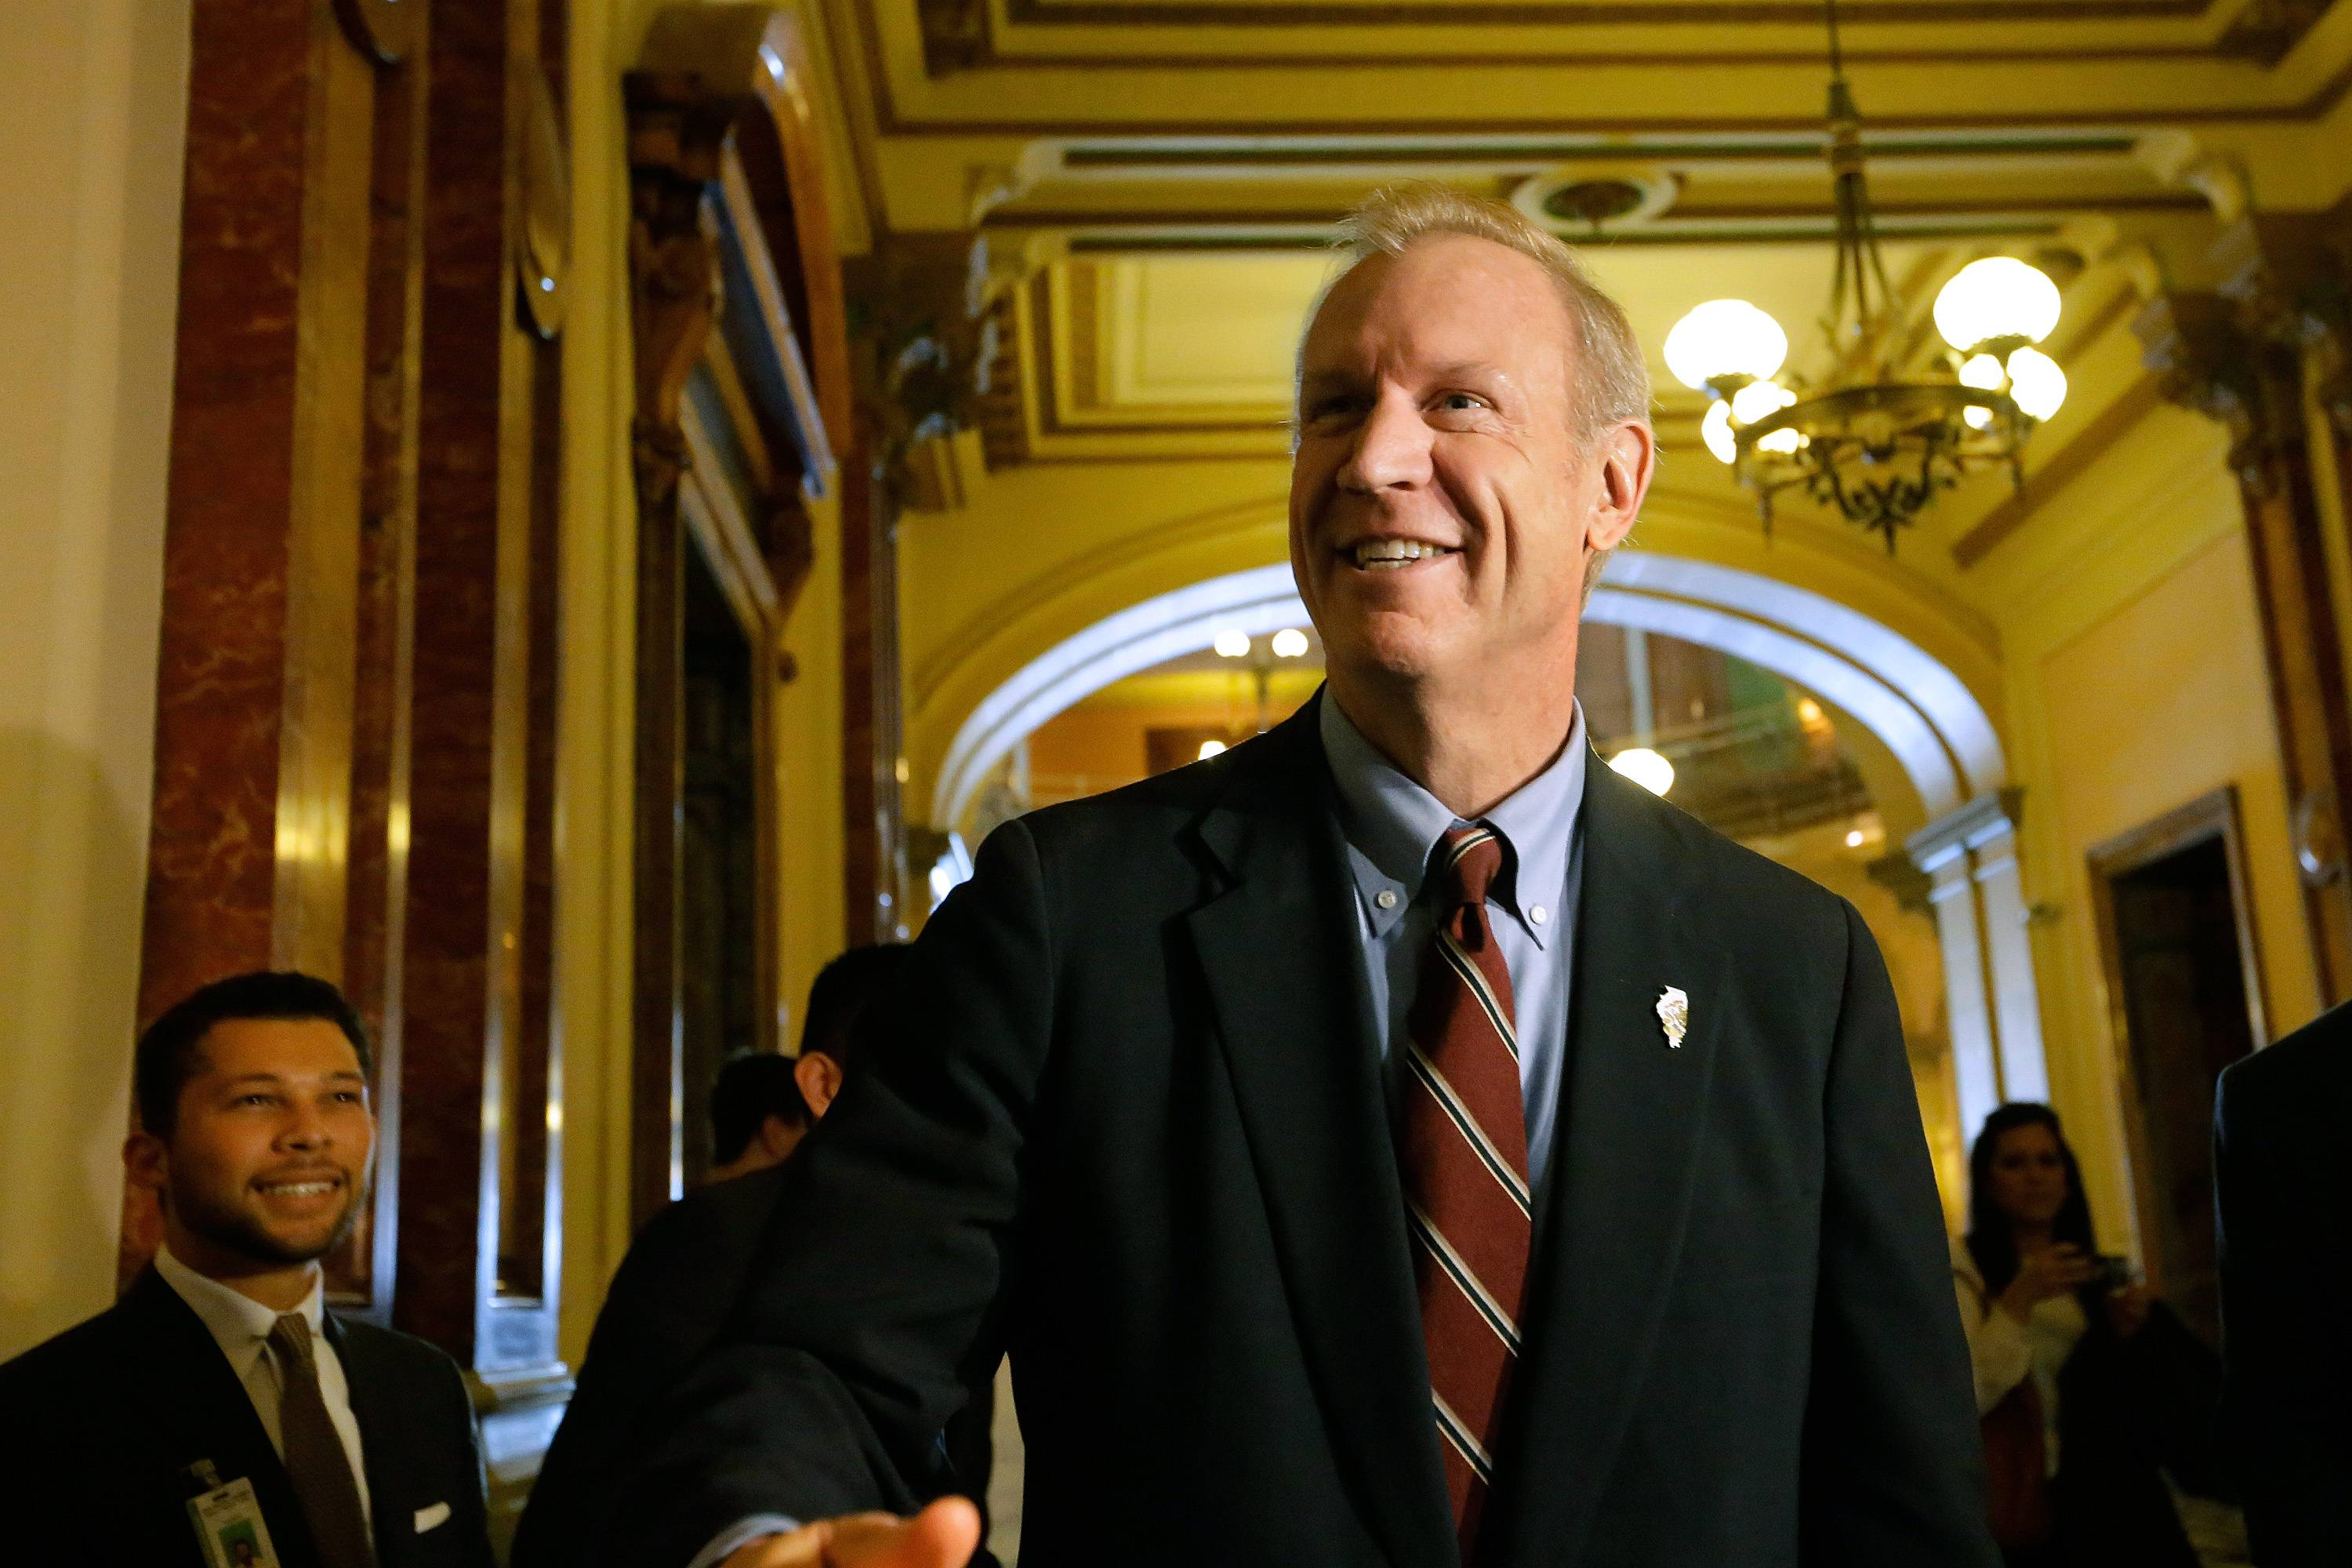 Republican Gov.-elect Bruce Rauner has started his transition into the job.